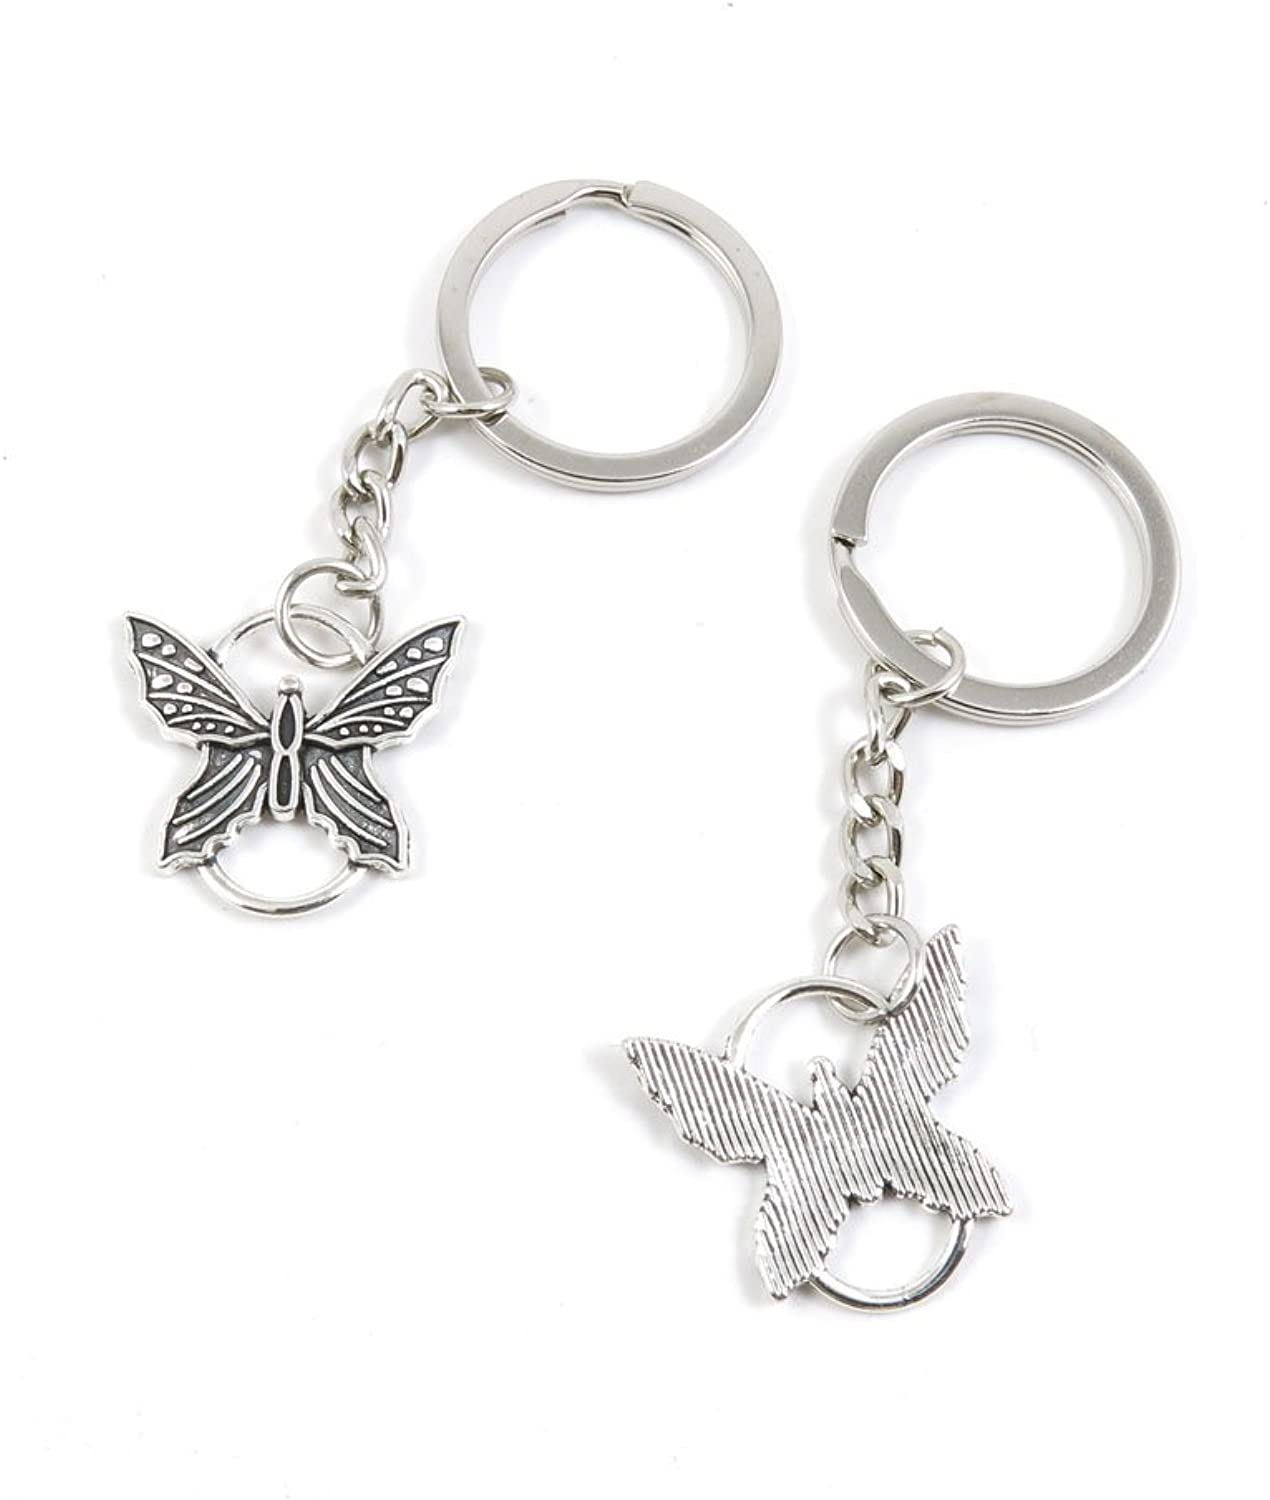 170 Pieces Fashion Jewelry Keyring Keychain Door Car Key Tag Ring Chain Supplier Supply Wholesale Bulk Lots X9FF6 Butterfly Connector